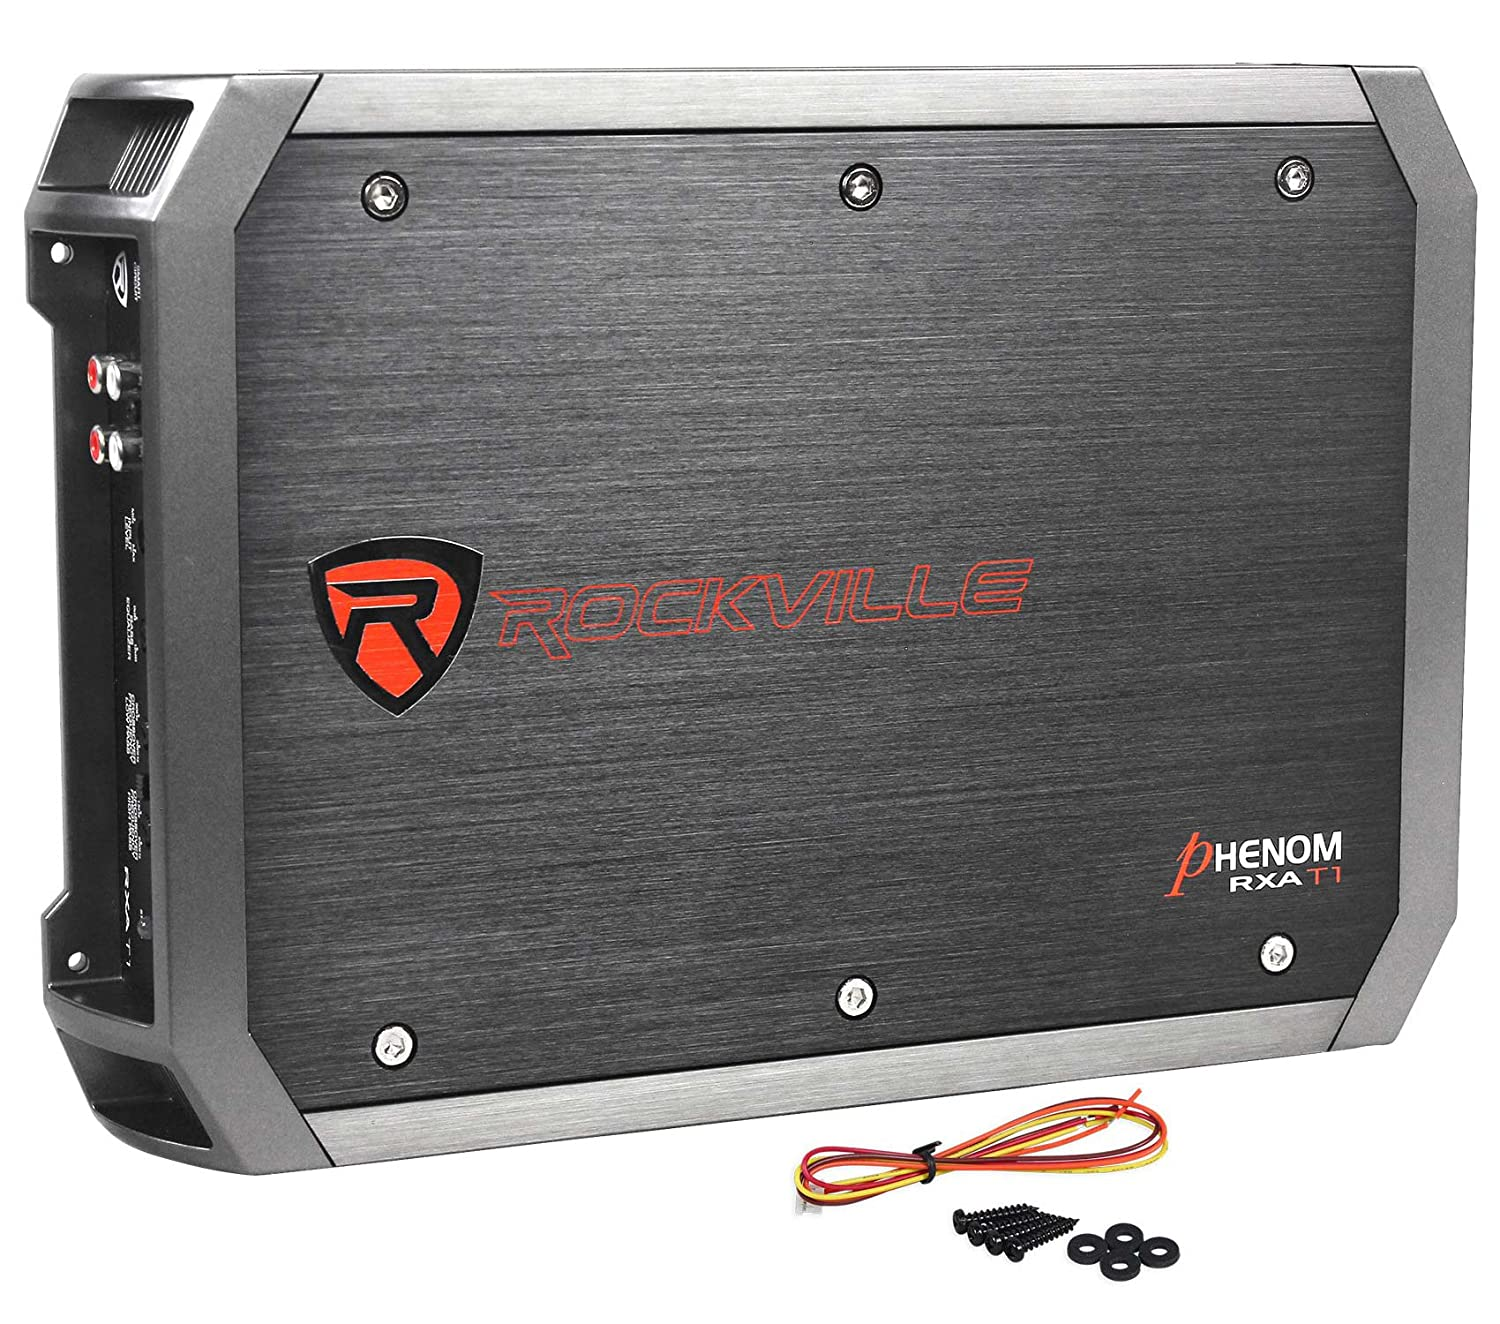 Rockville Rxa-t2 New Rockville RXA-T2 2400 Watt Peak/1250w RMS 2 Channel Amplifier Car Stereo Amp - Set of Audiosavings